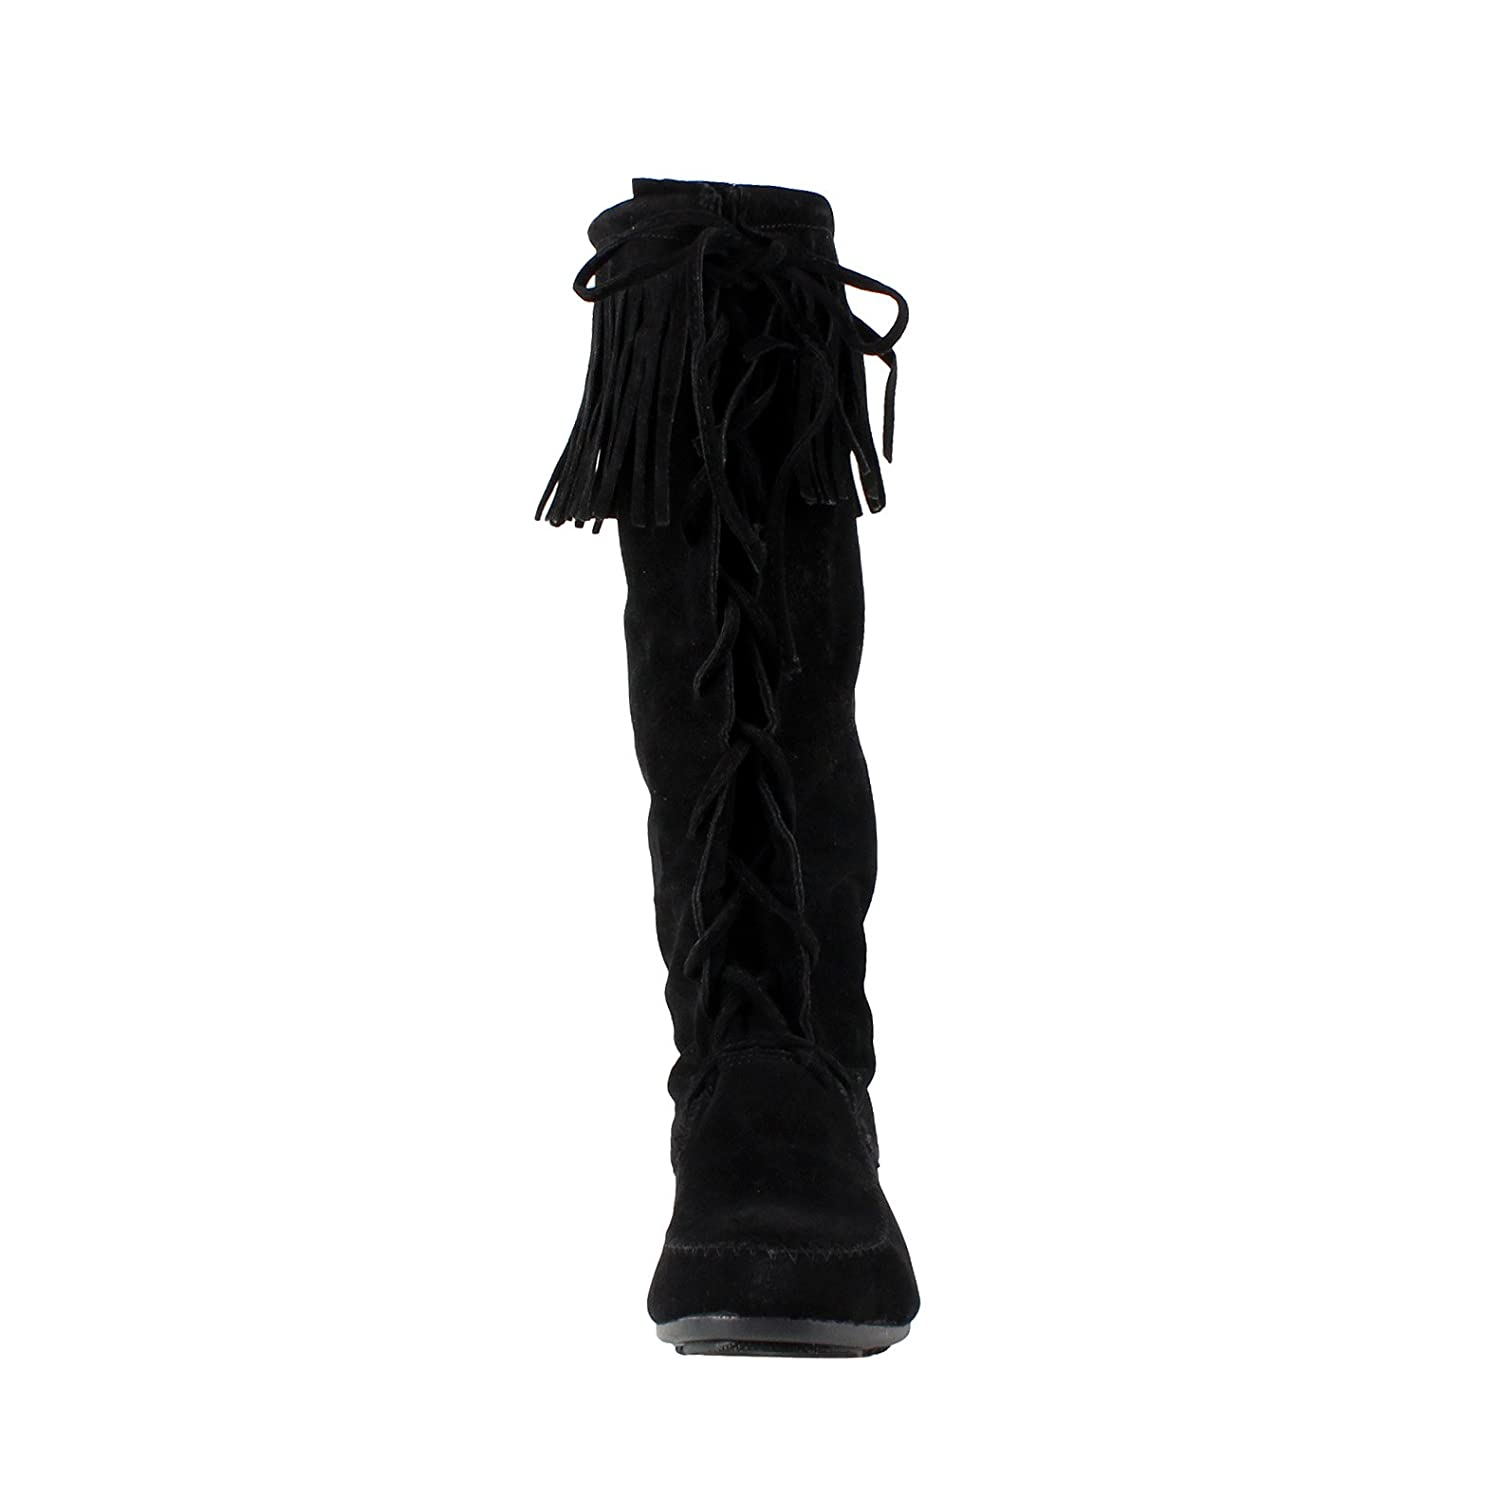 Minnetonka suede leather knee high tall lace up moccasin fringe boots - Amazon Com Forever Baylee 09 Women S Fashion Fringe Lace Up Knee High Boots Mid Calf